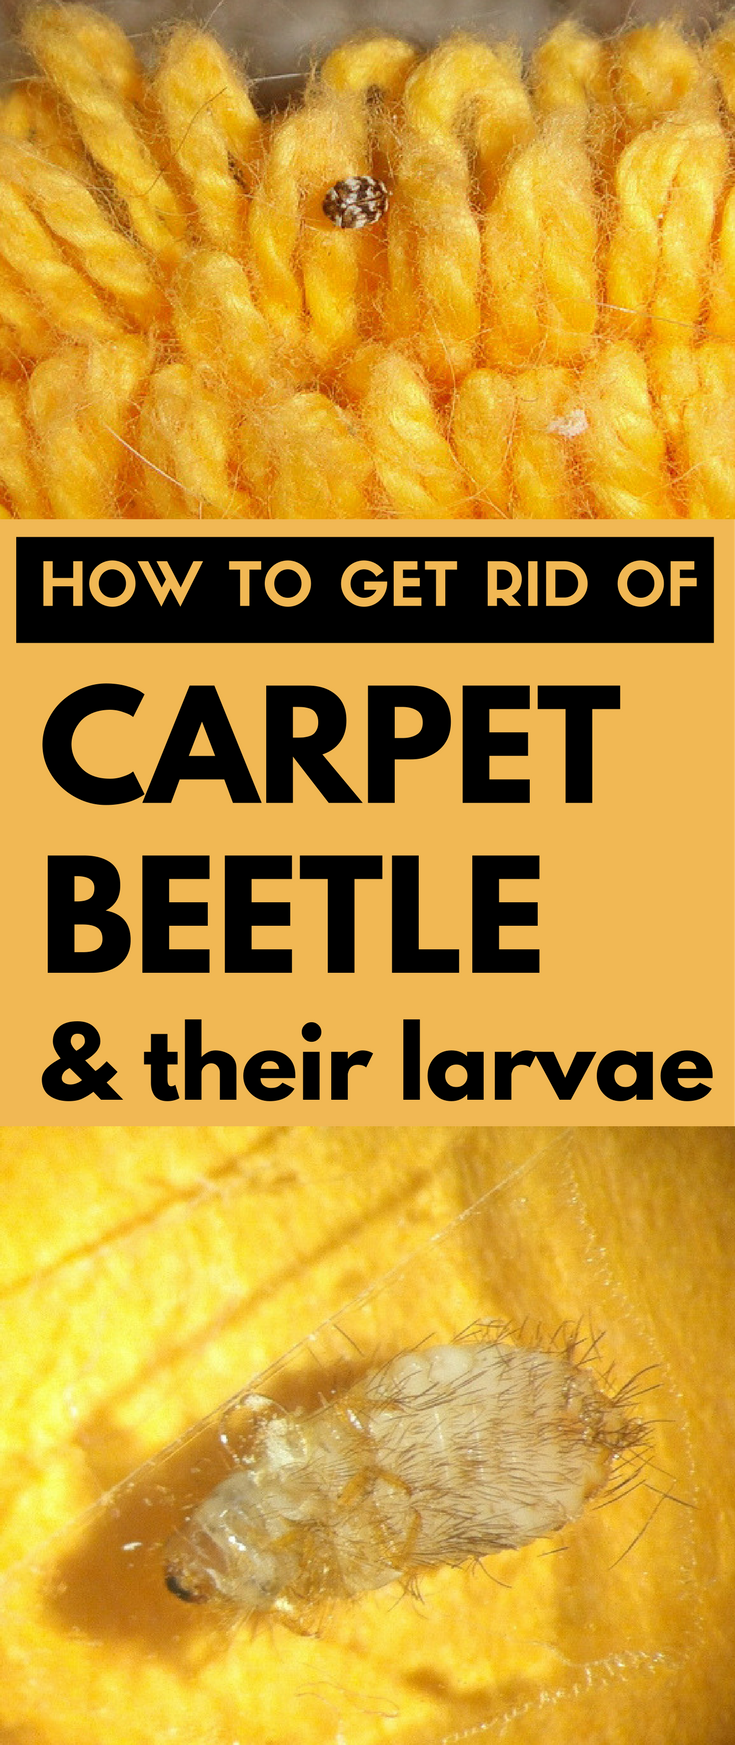 How To Get Rid Of Cat Urine Smell >> How to Get Rid of Carpet Beetle and Their Larvae ...